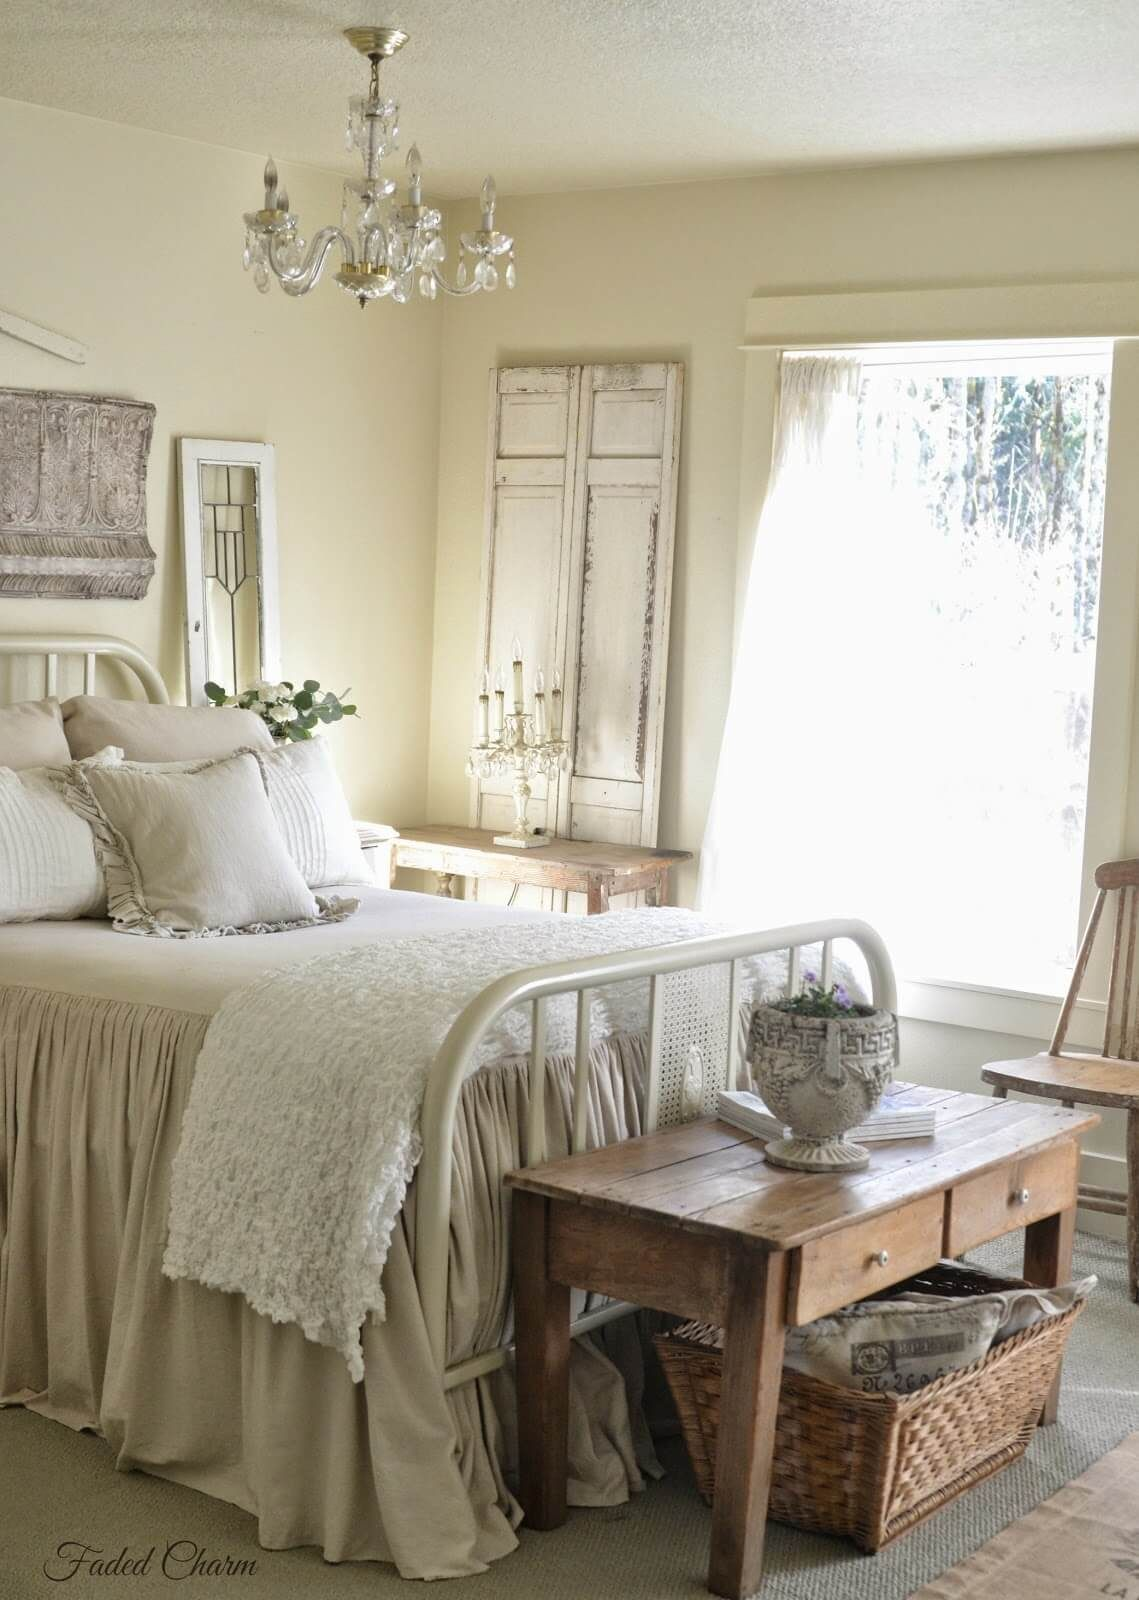 Charming bedroom with antique bed frame french country design schlafzimmer romantisches - Romantisches schlafzimmer landhausstil ...